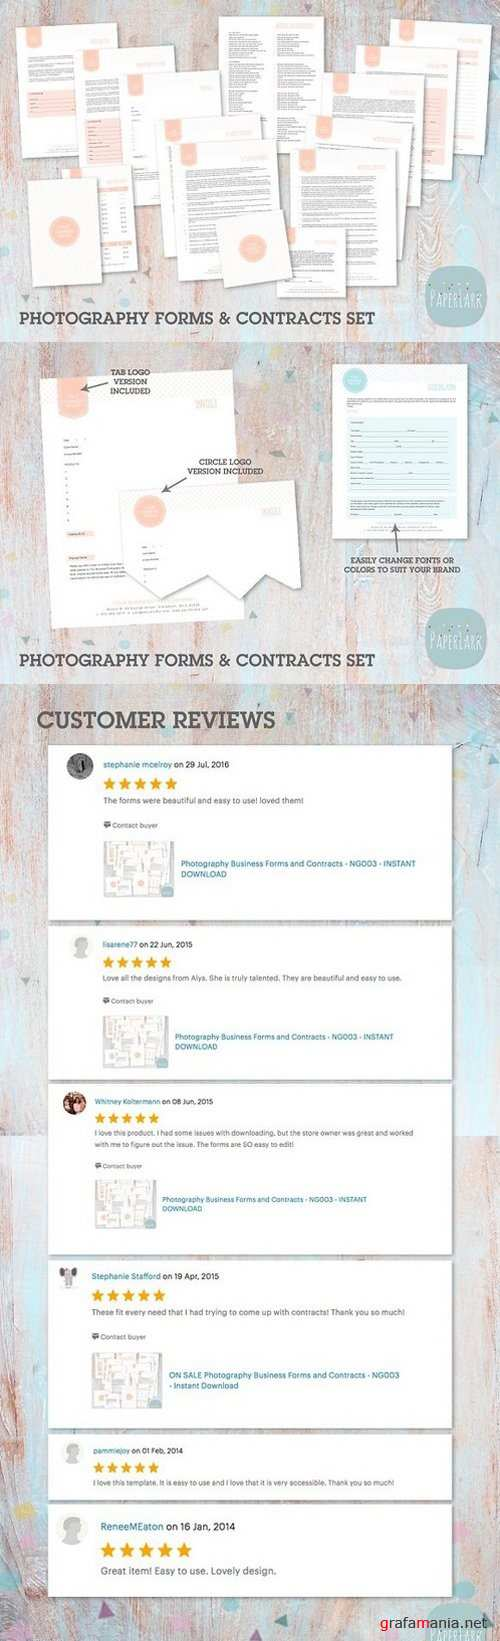 NG003 Photography Contracts & Forms 1310195